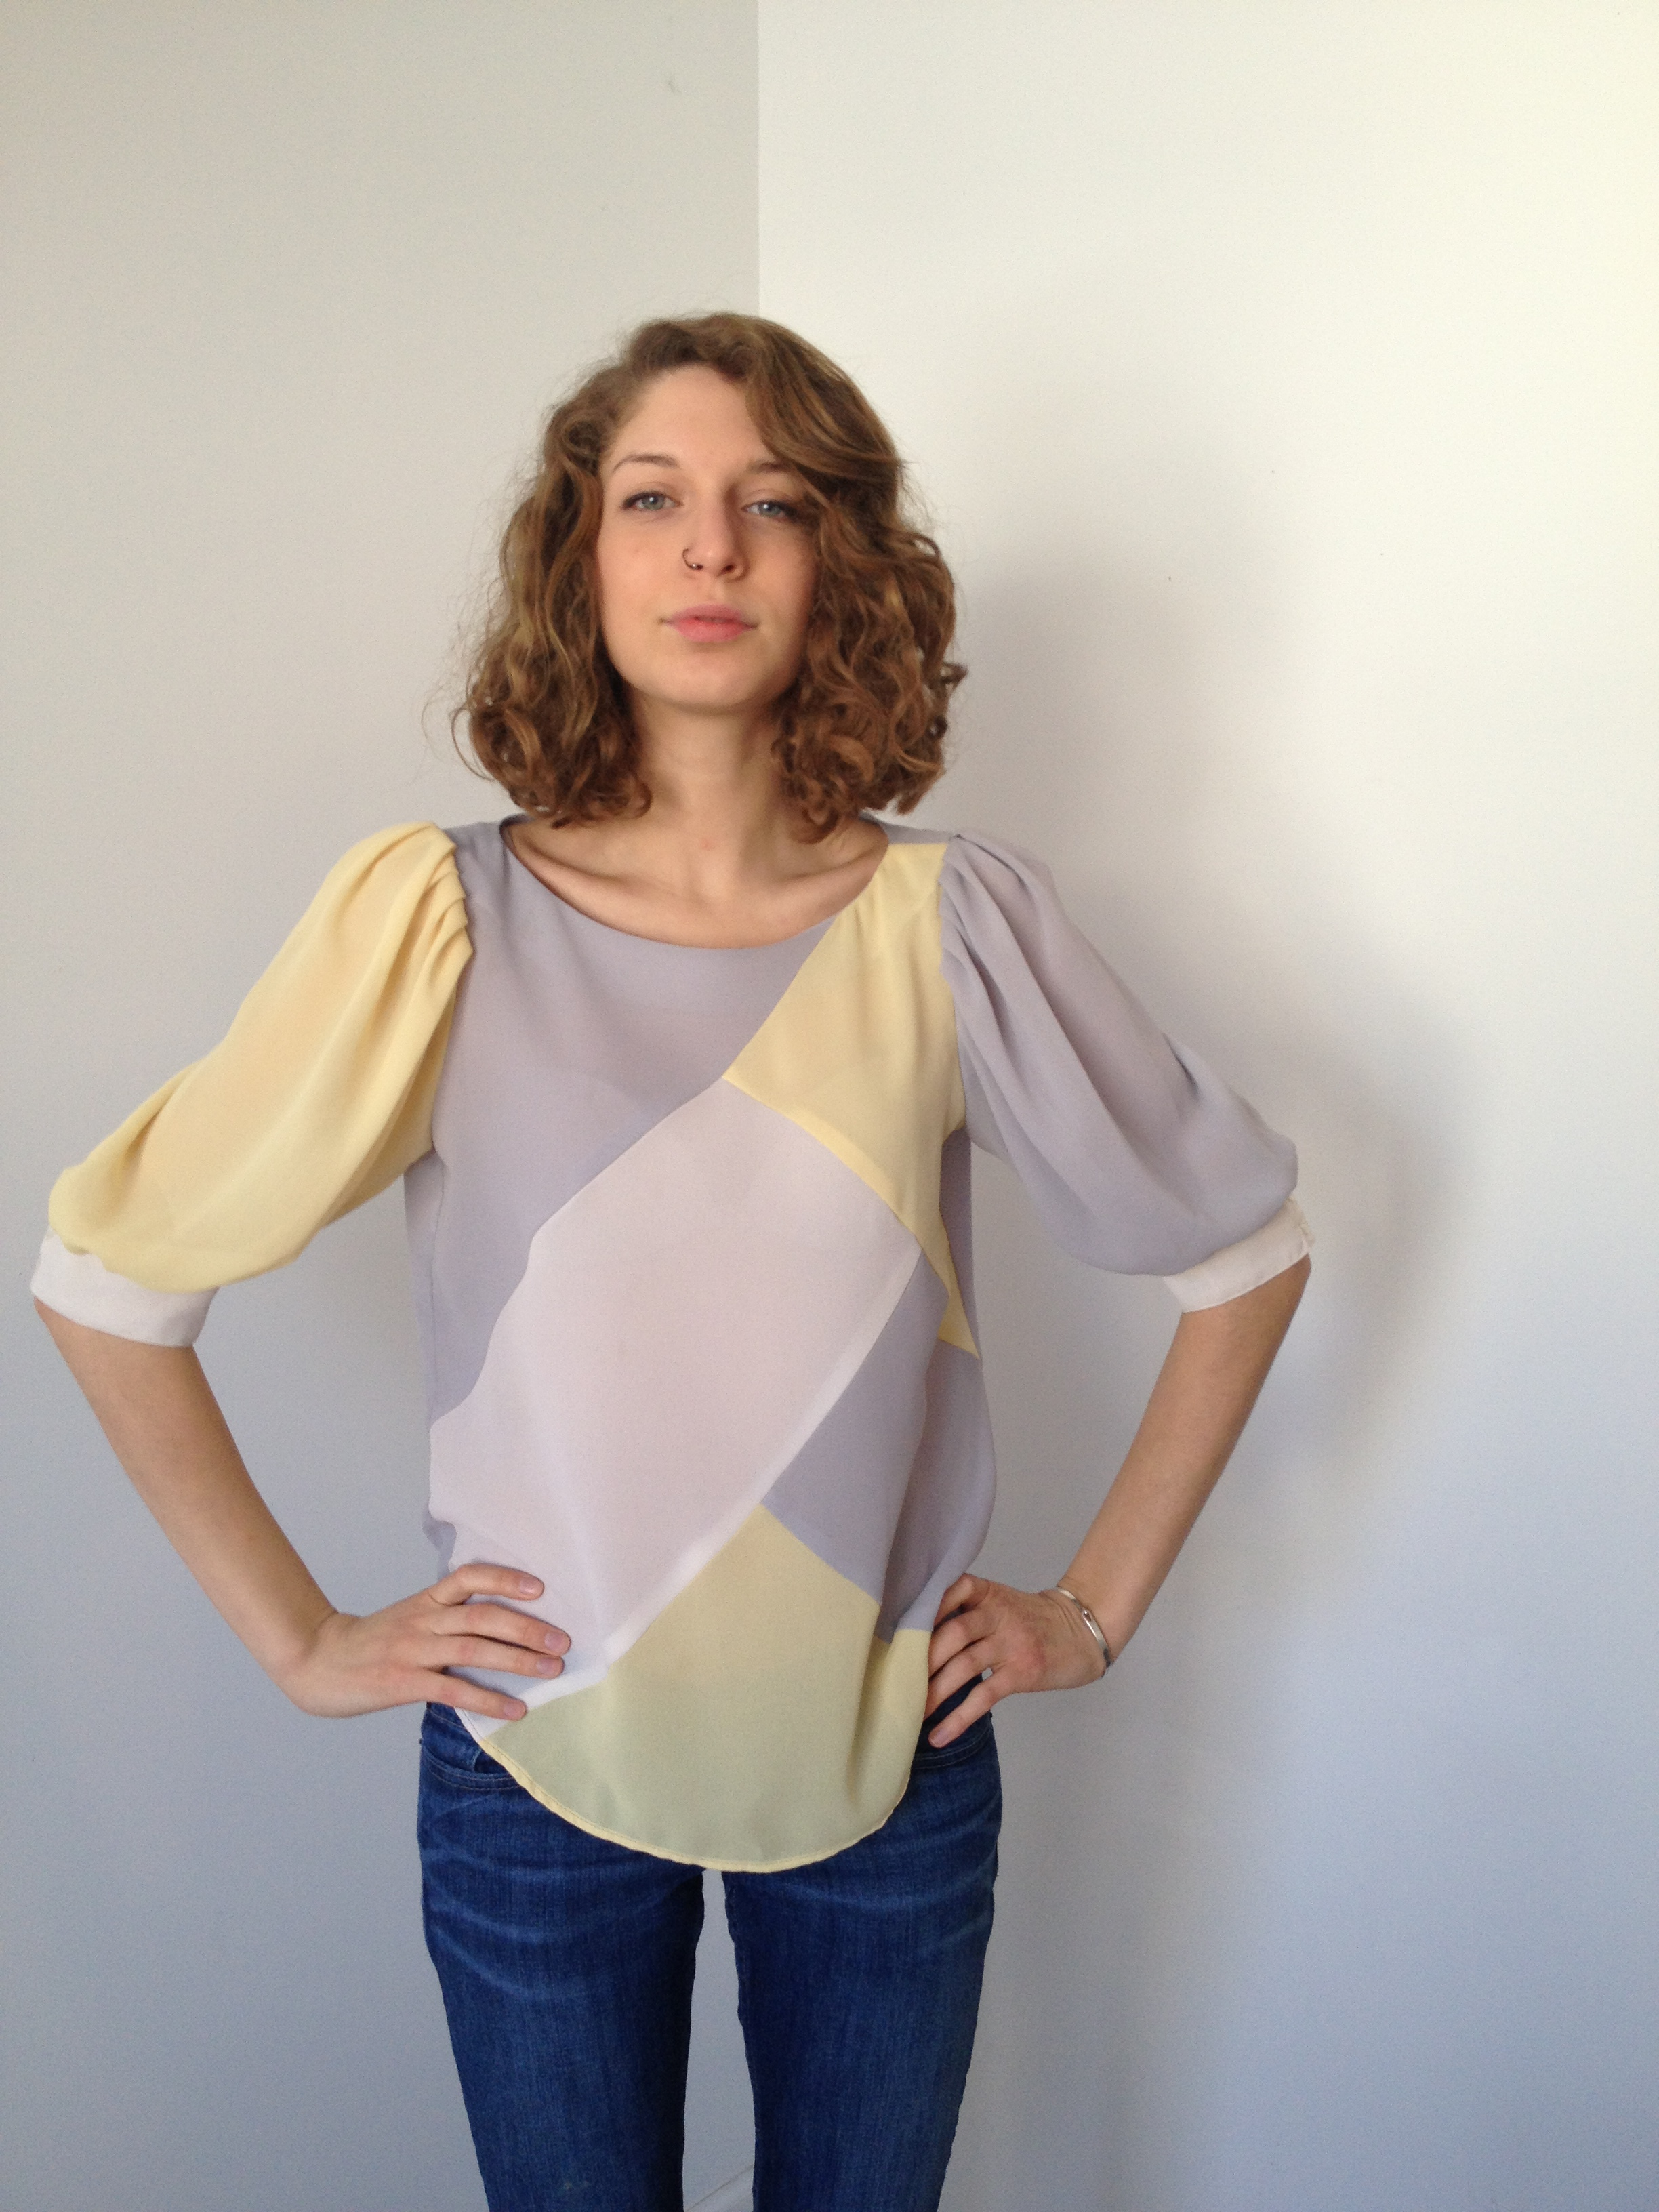 vintage dove gray + pale yellow + white blouse s m